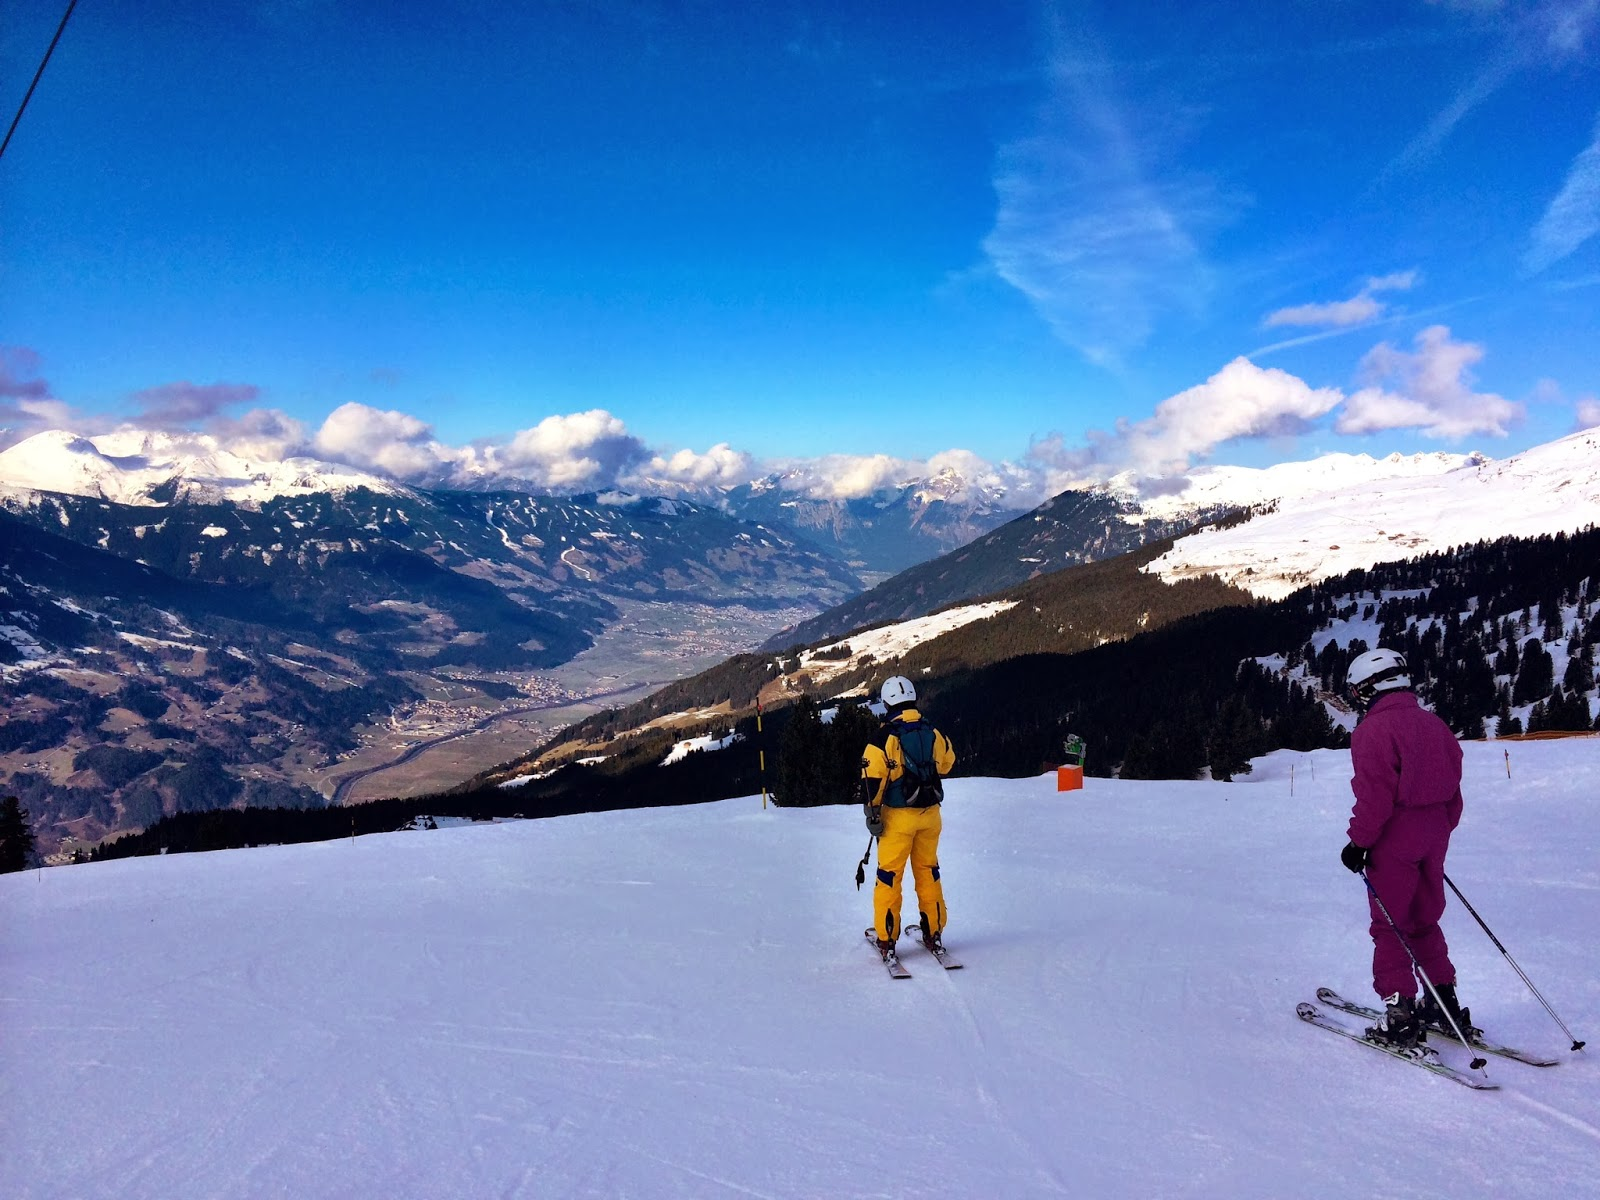 A piste looking down over Mayrhofen